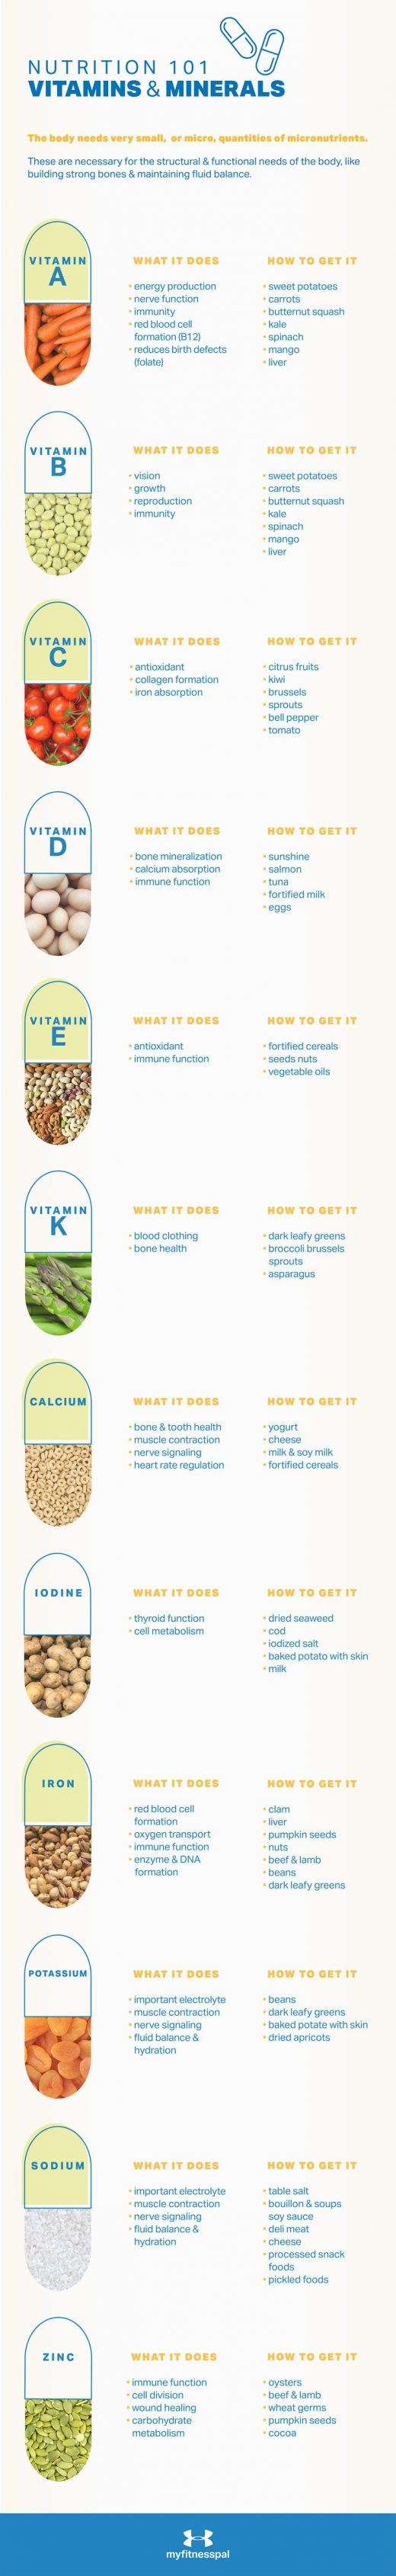 A Primer on the Most Essential Vitamins and Minerals